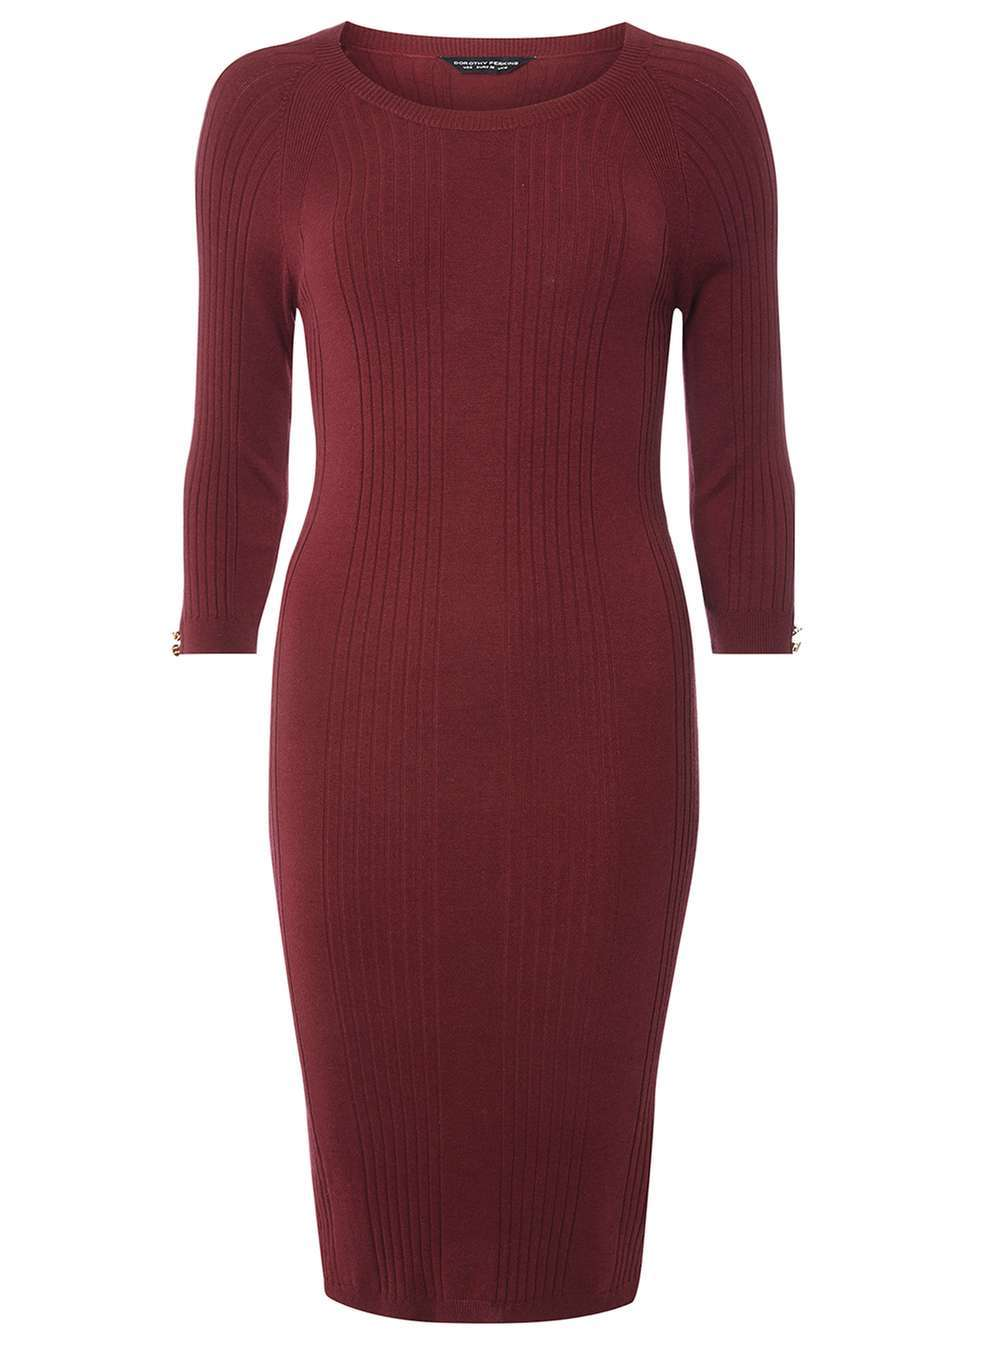 Womens Berry Rib Detail Midi Dress Red - fit: tight; pattern: plain; style: bodycon; predominant colour: burgundy; occasions: evening; length: on the knee; fibres: viscose/rayon - stretch; neckline: crew; sleeve length: 3/4 length; sleeve style: standard; texture group: jersey - clingy; pattern type: fabric; season: a/w 2016; wardrobe: event